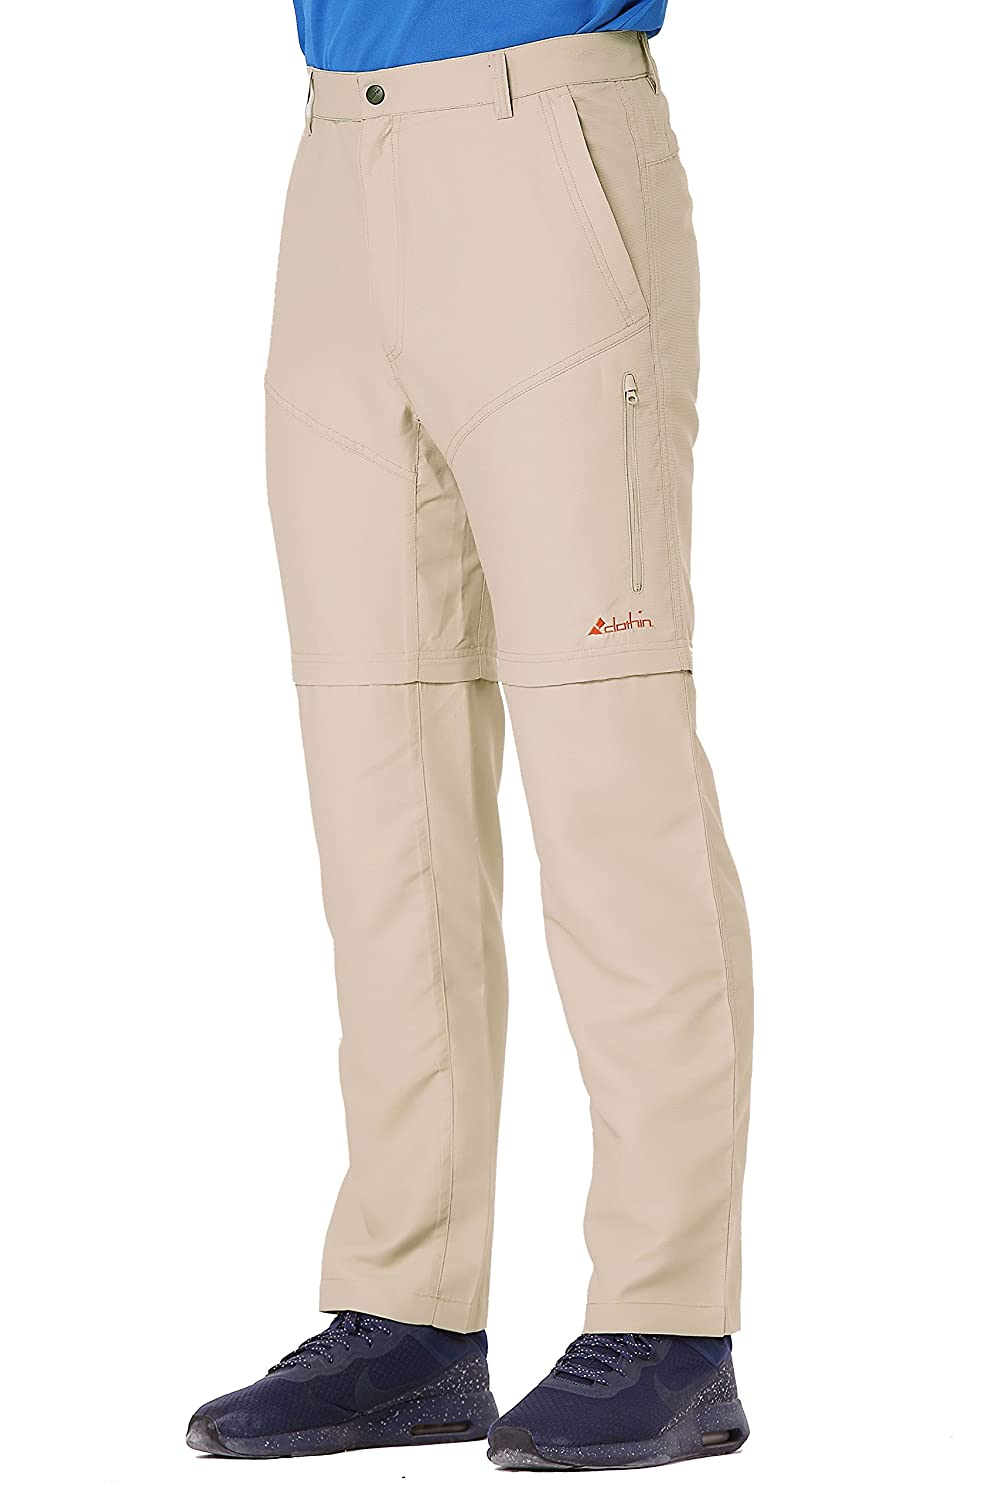 Clothin Men's Convertible Trousers w/Zip-Off Legs - Lightweight Breathable Quick-Dry